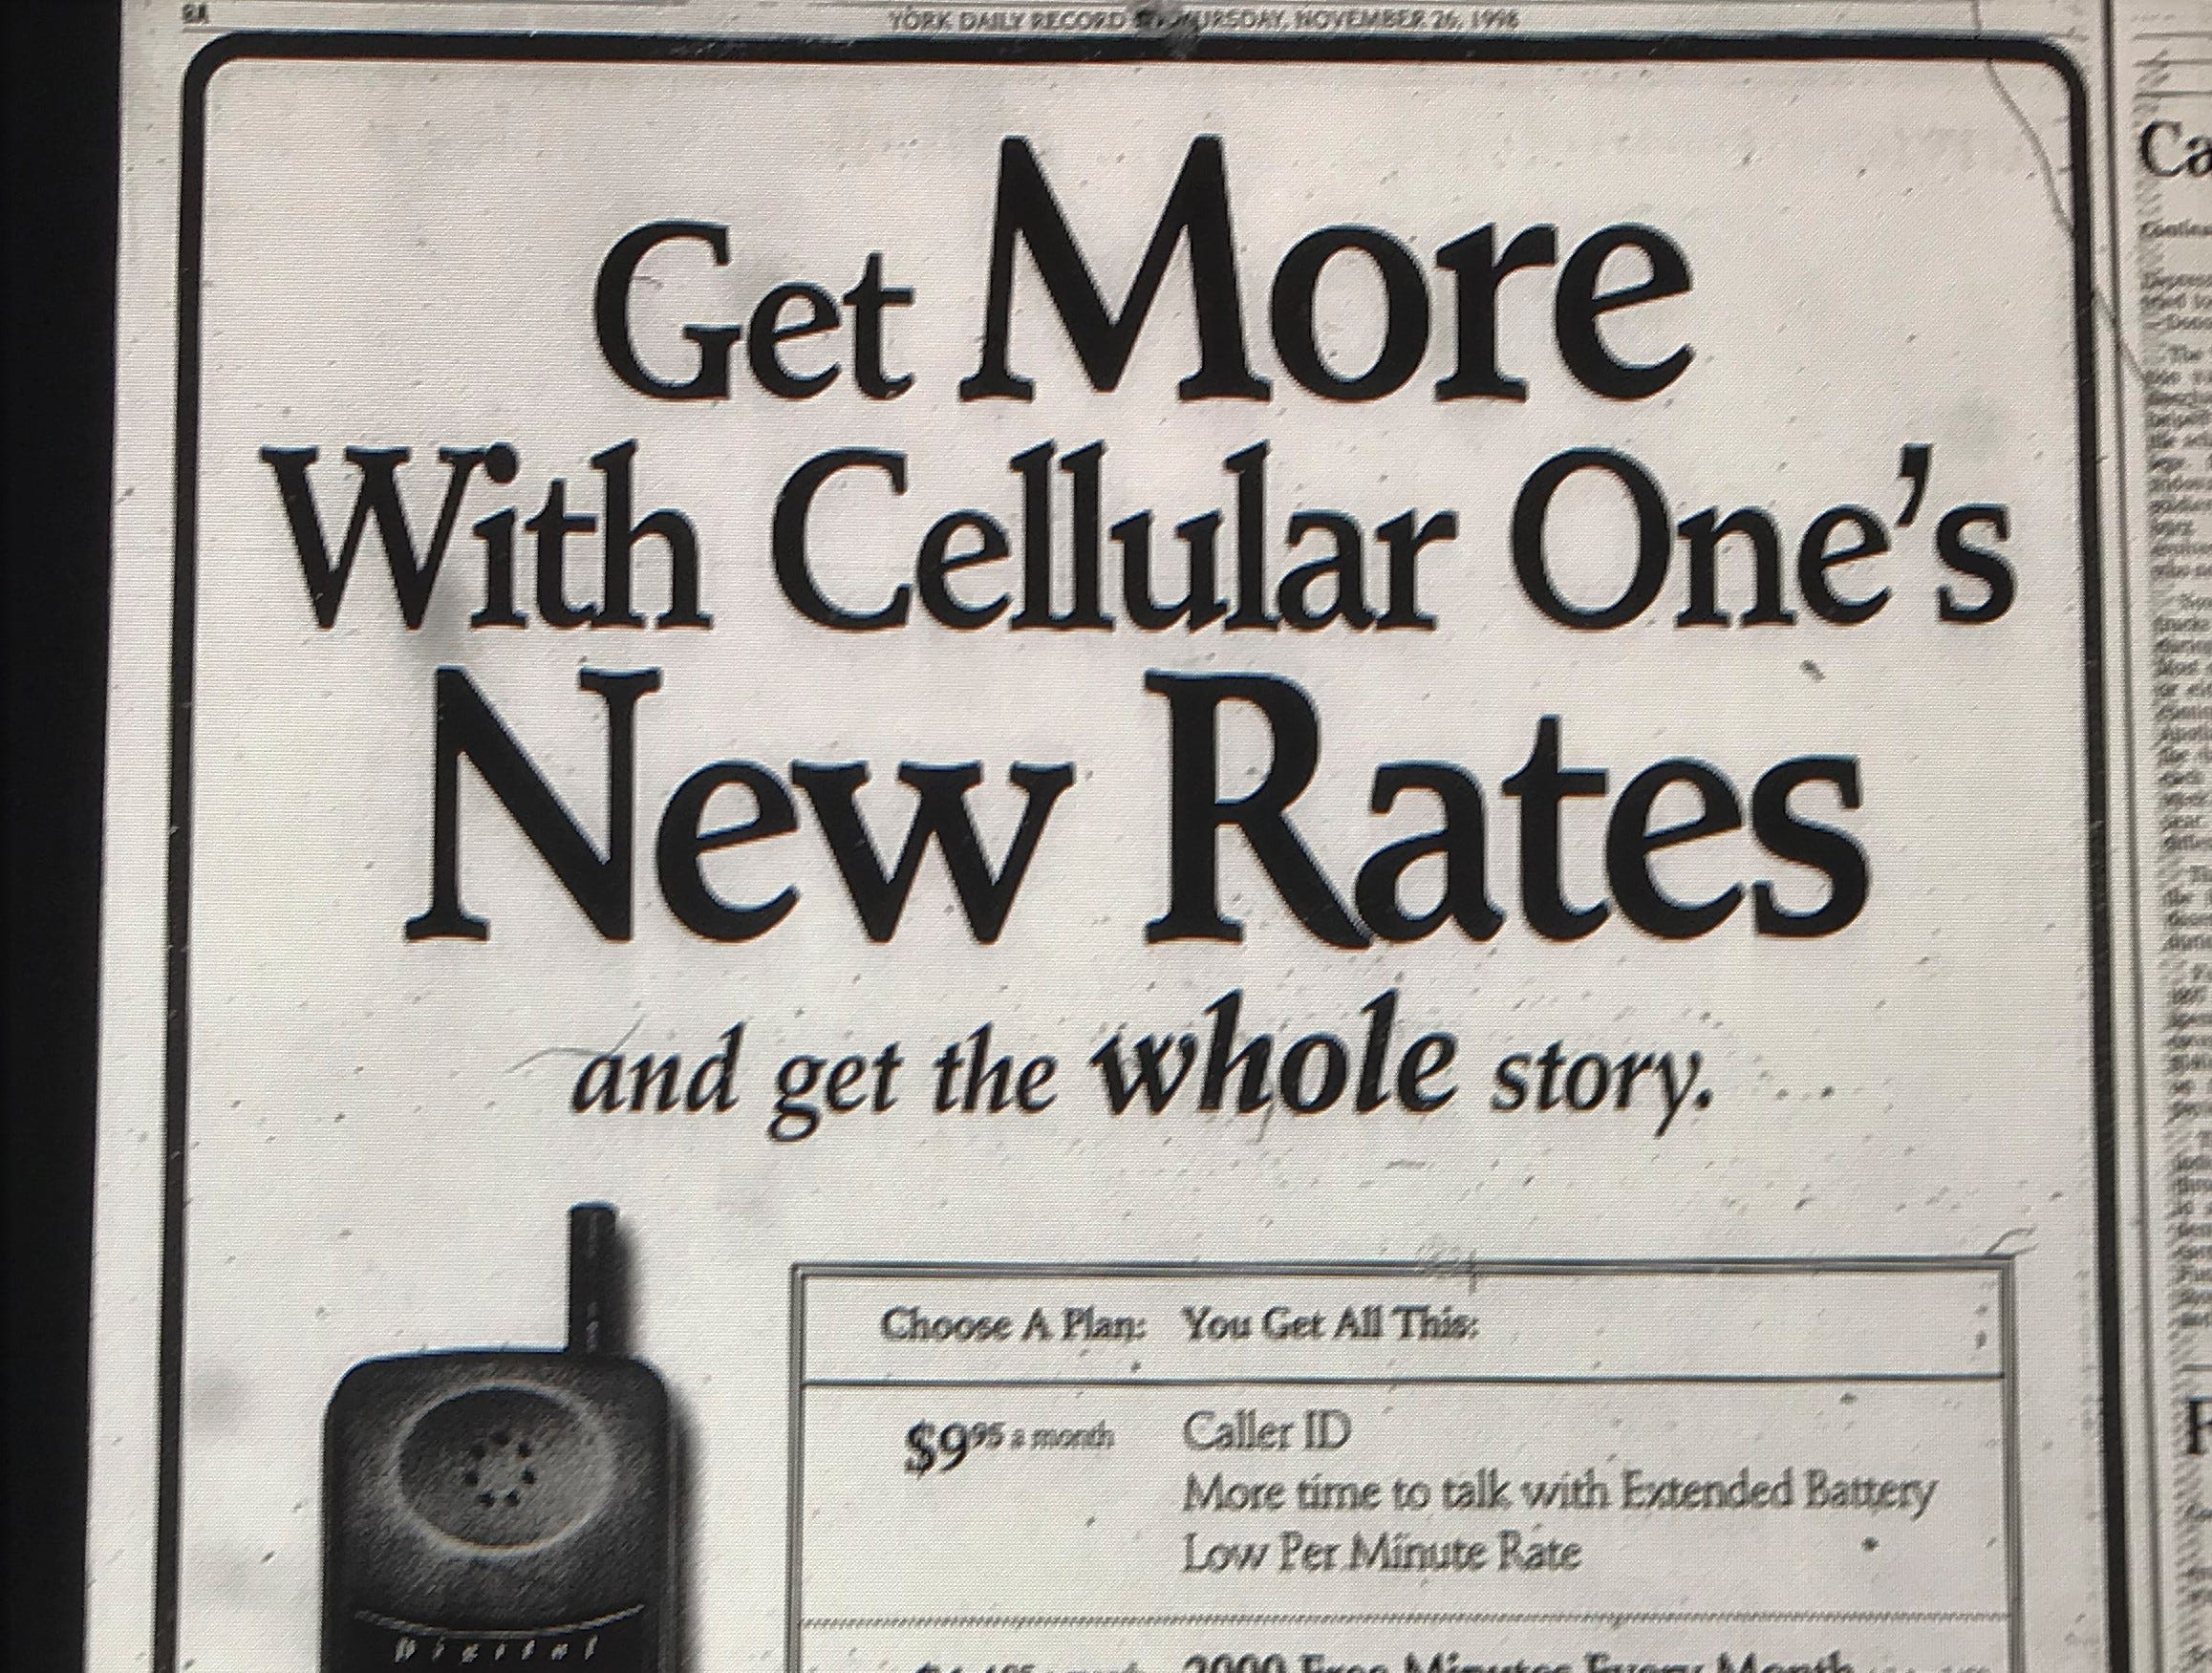 A 1998 holiday advertisement from Celluar One.